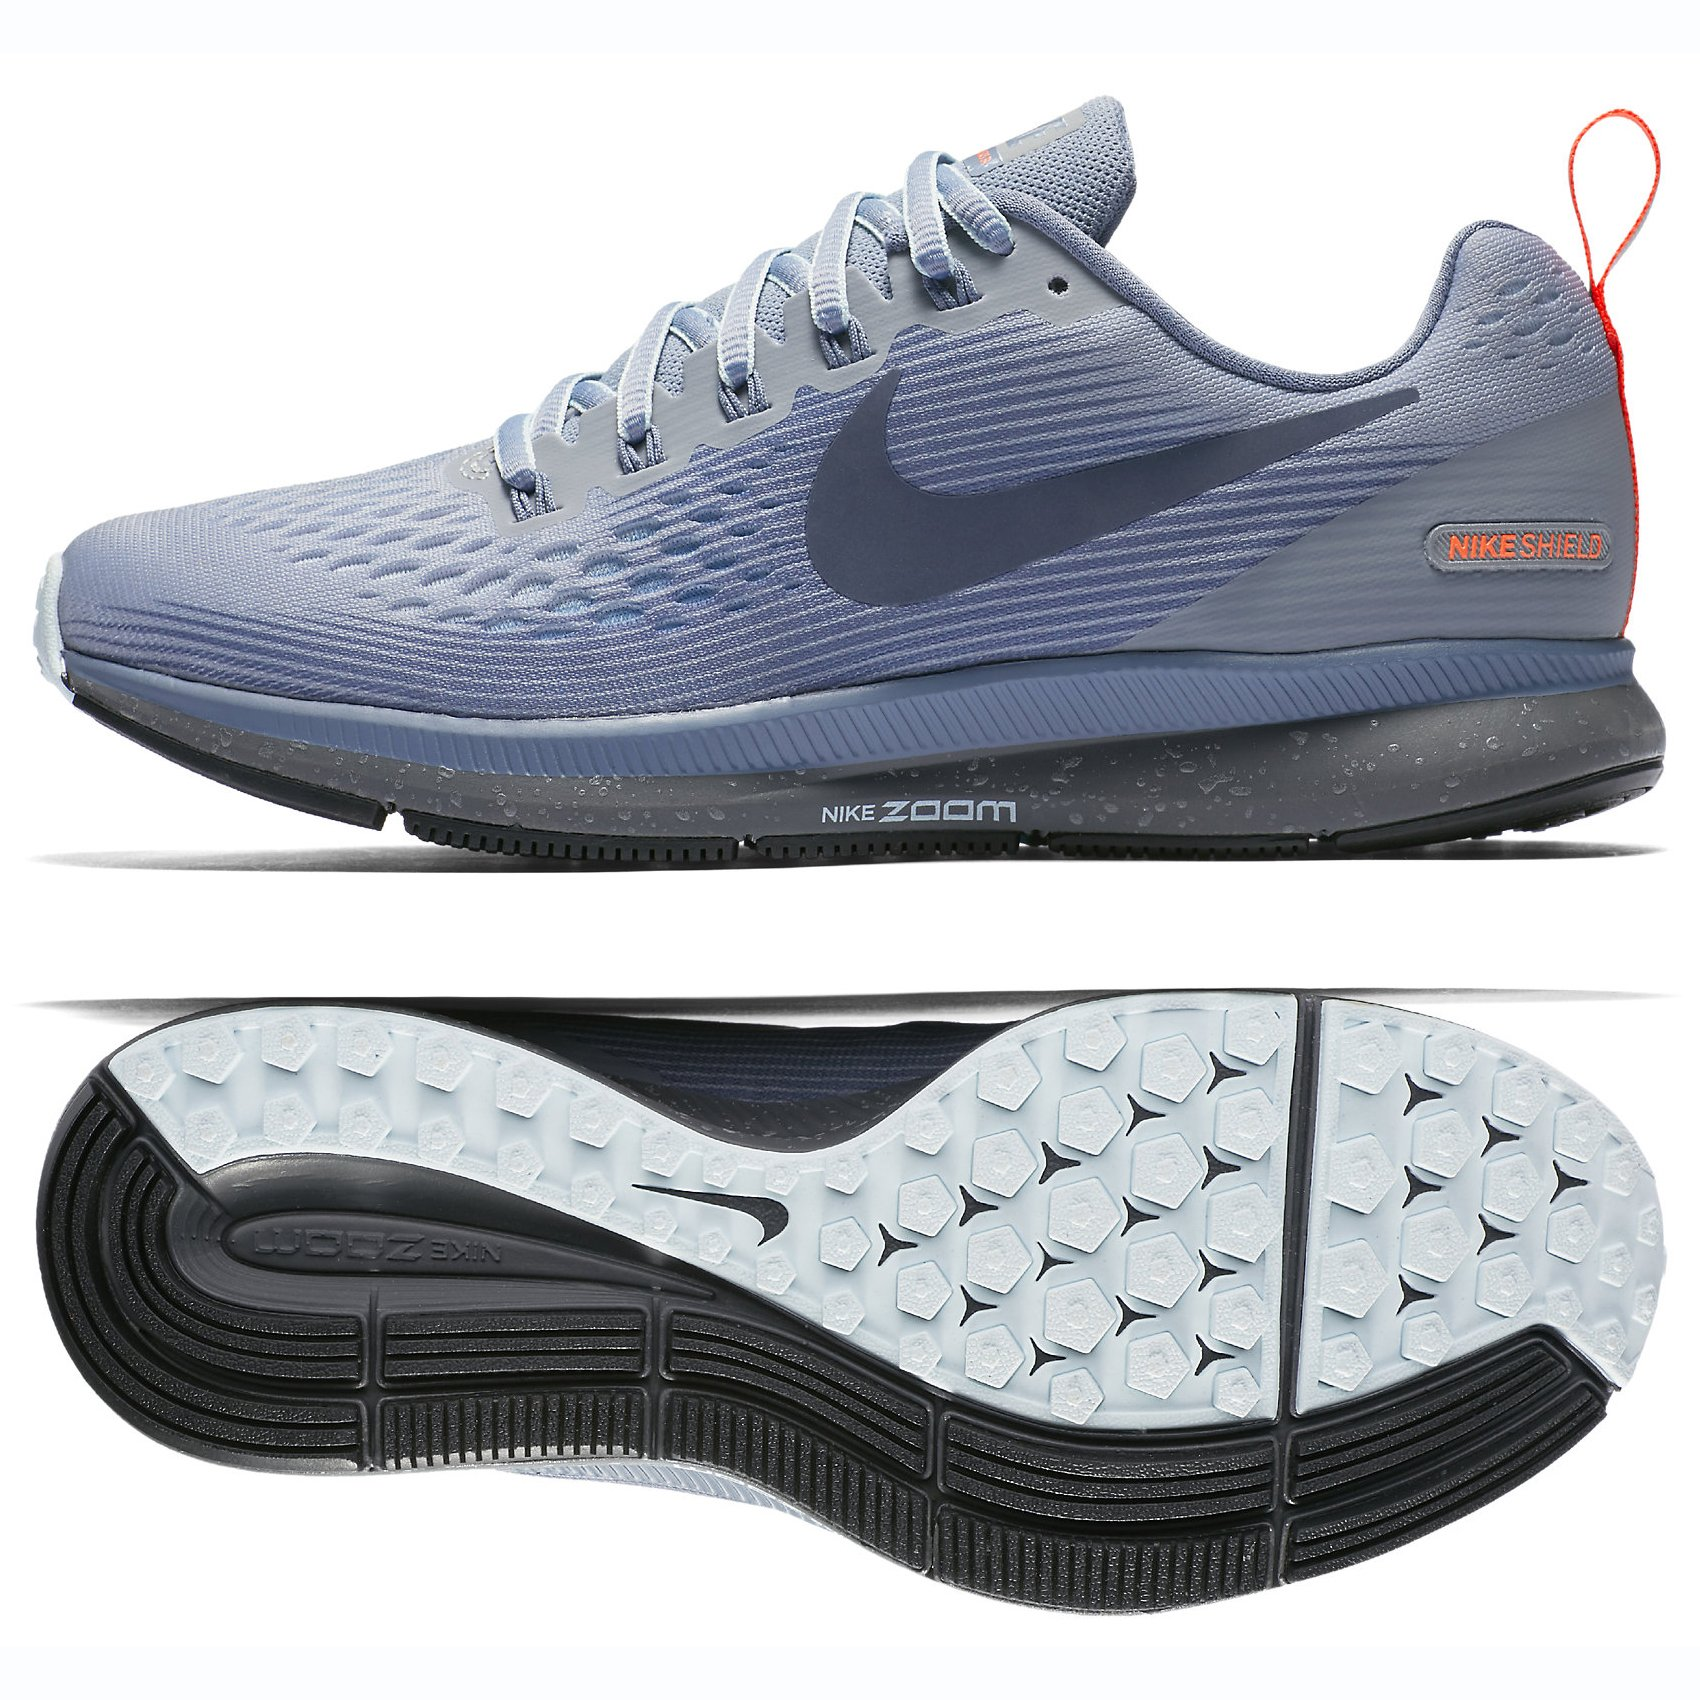 new product 69083 23d4b NIKE W Air Zoom Pegasus 34 Shield 907328-002 Wolf Grey/Thunder Blue Women's  Running Shoes (7.5)